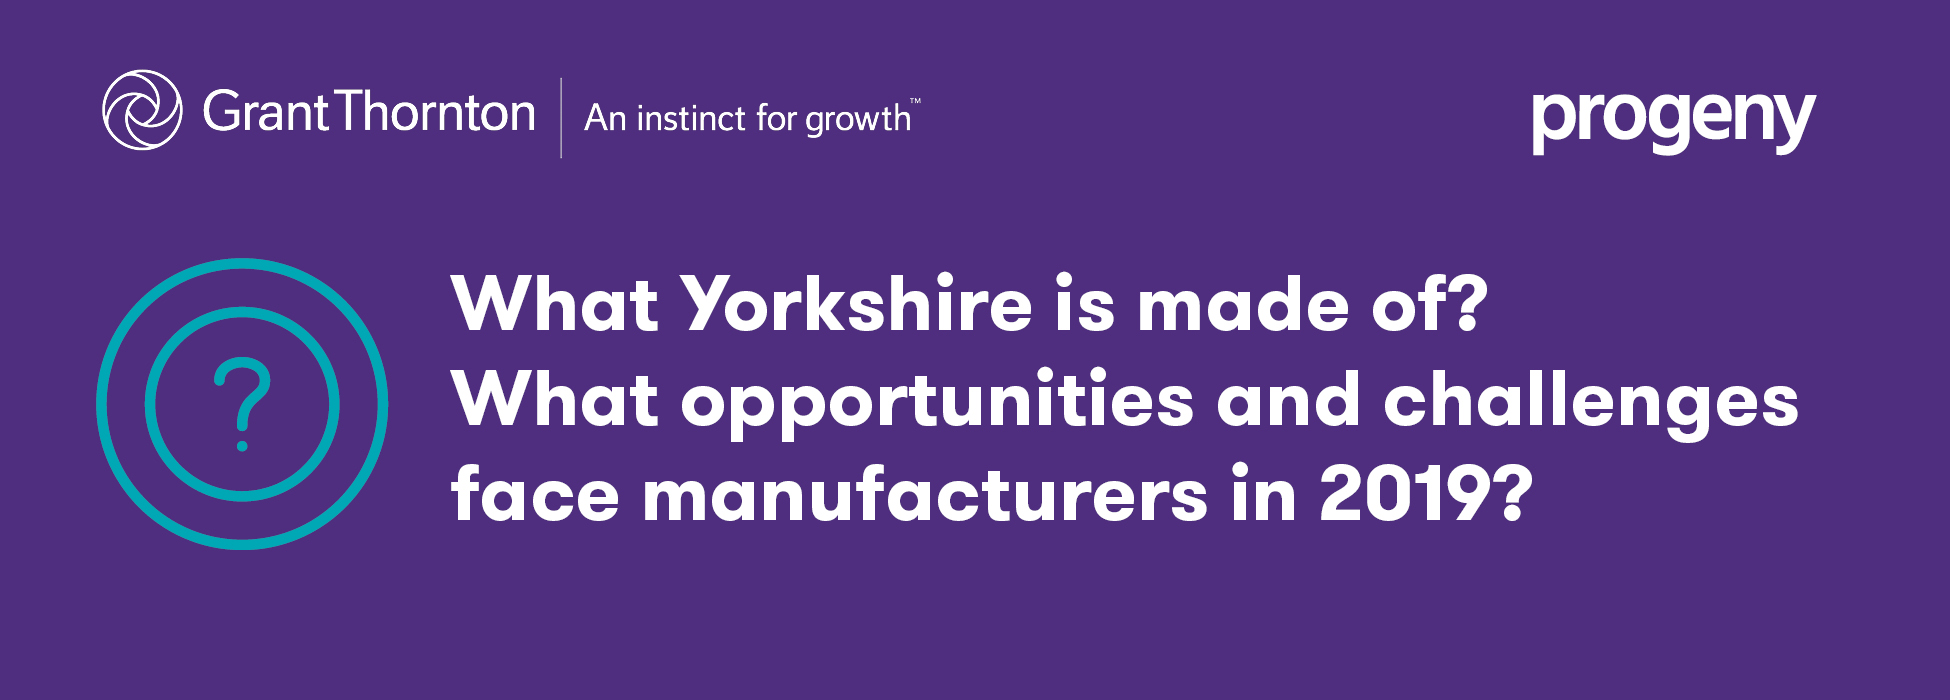 Unity and strength gives Yorkshire its unique proposition